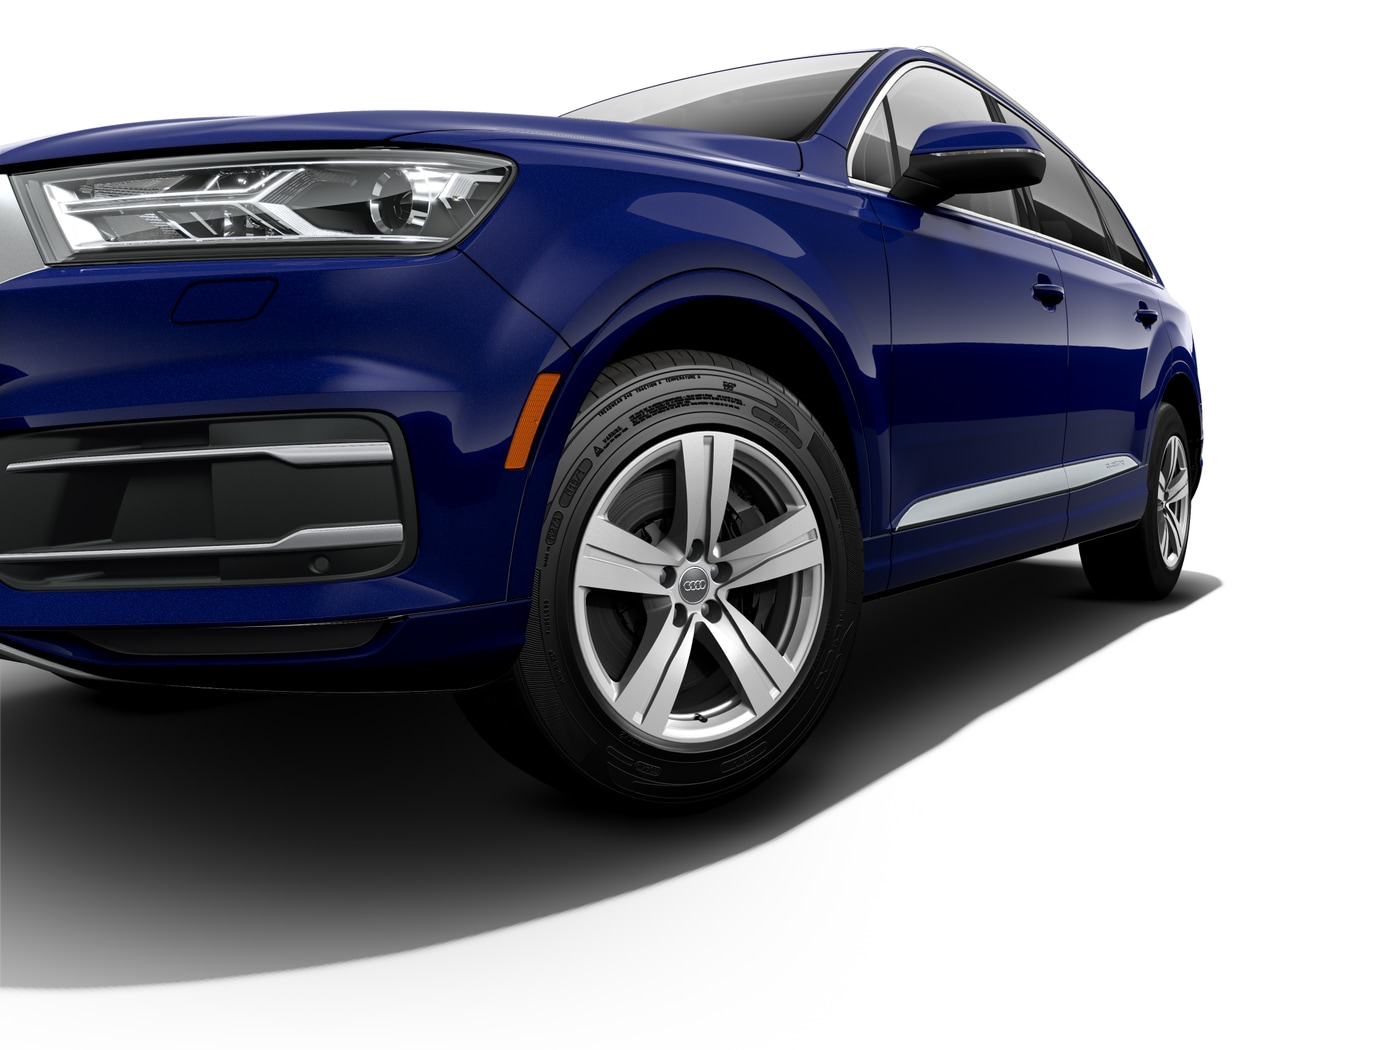 New 2019 Audi Q7 For Sale at The Albany Auto Group   VIN